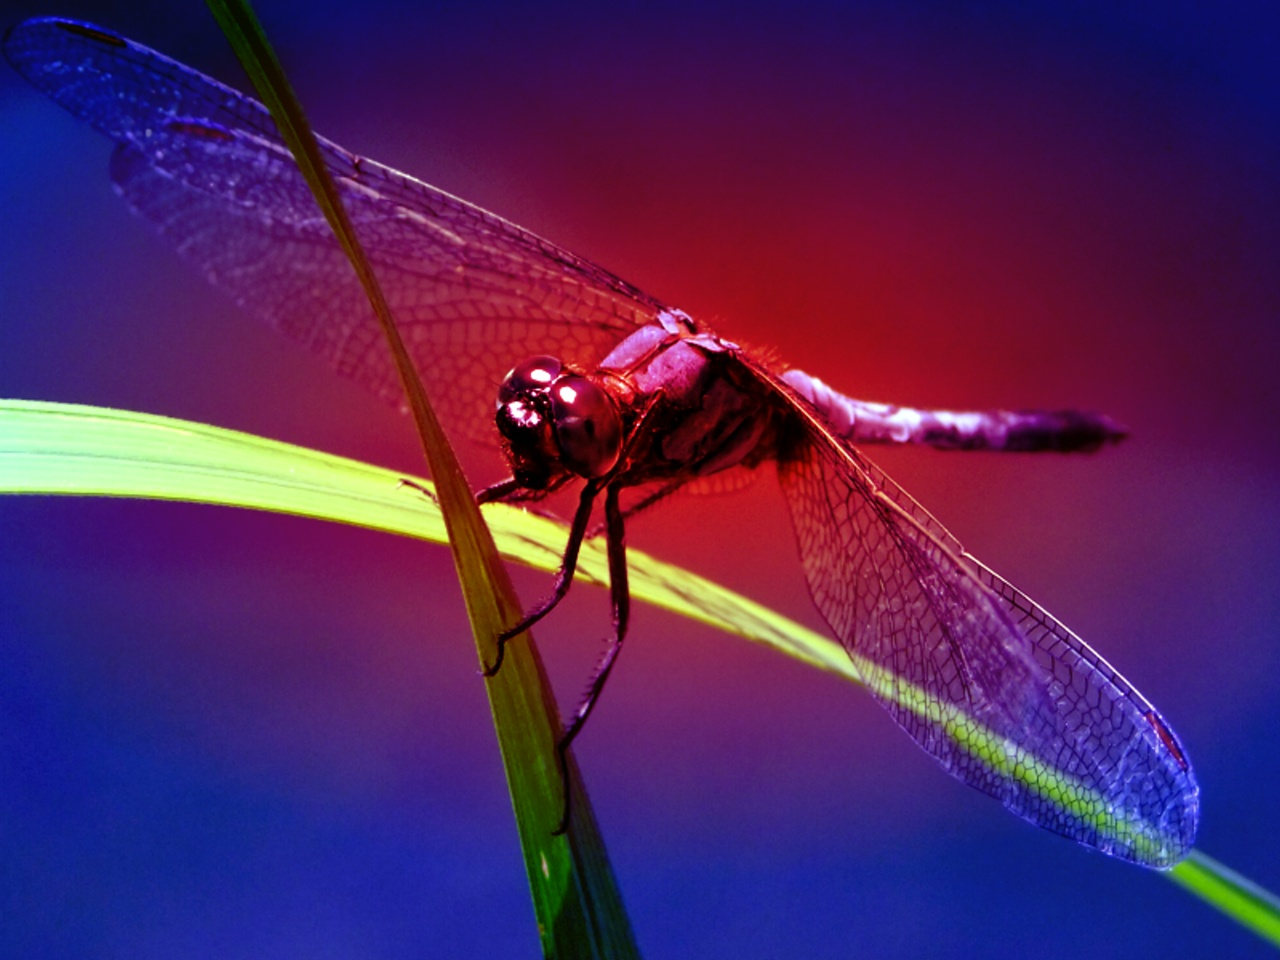 Dragonfly Wallpapers, Dragonfly Backgrounds in % Quality HD 1280x960